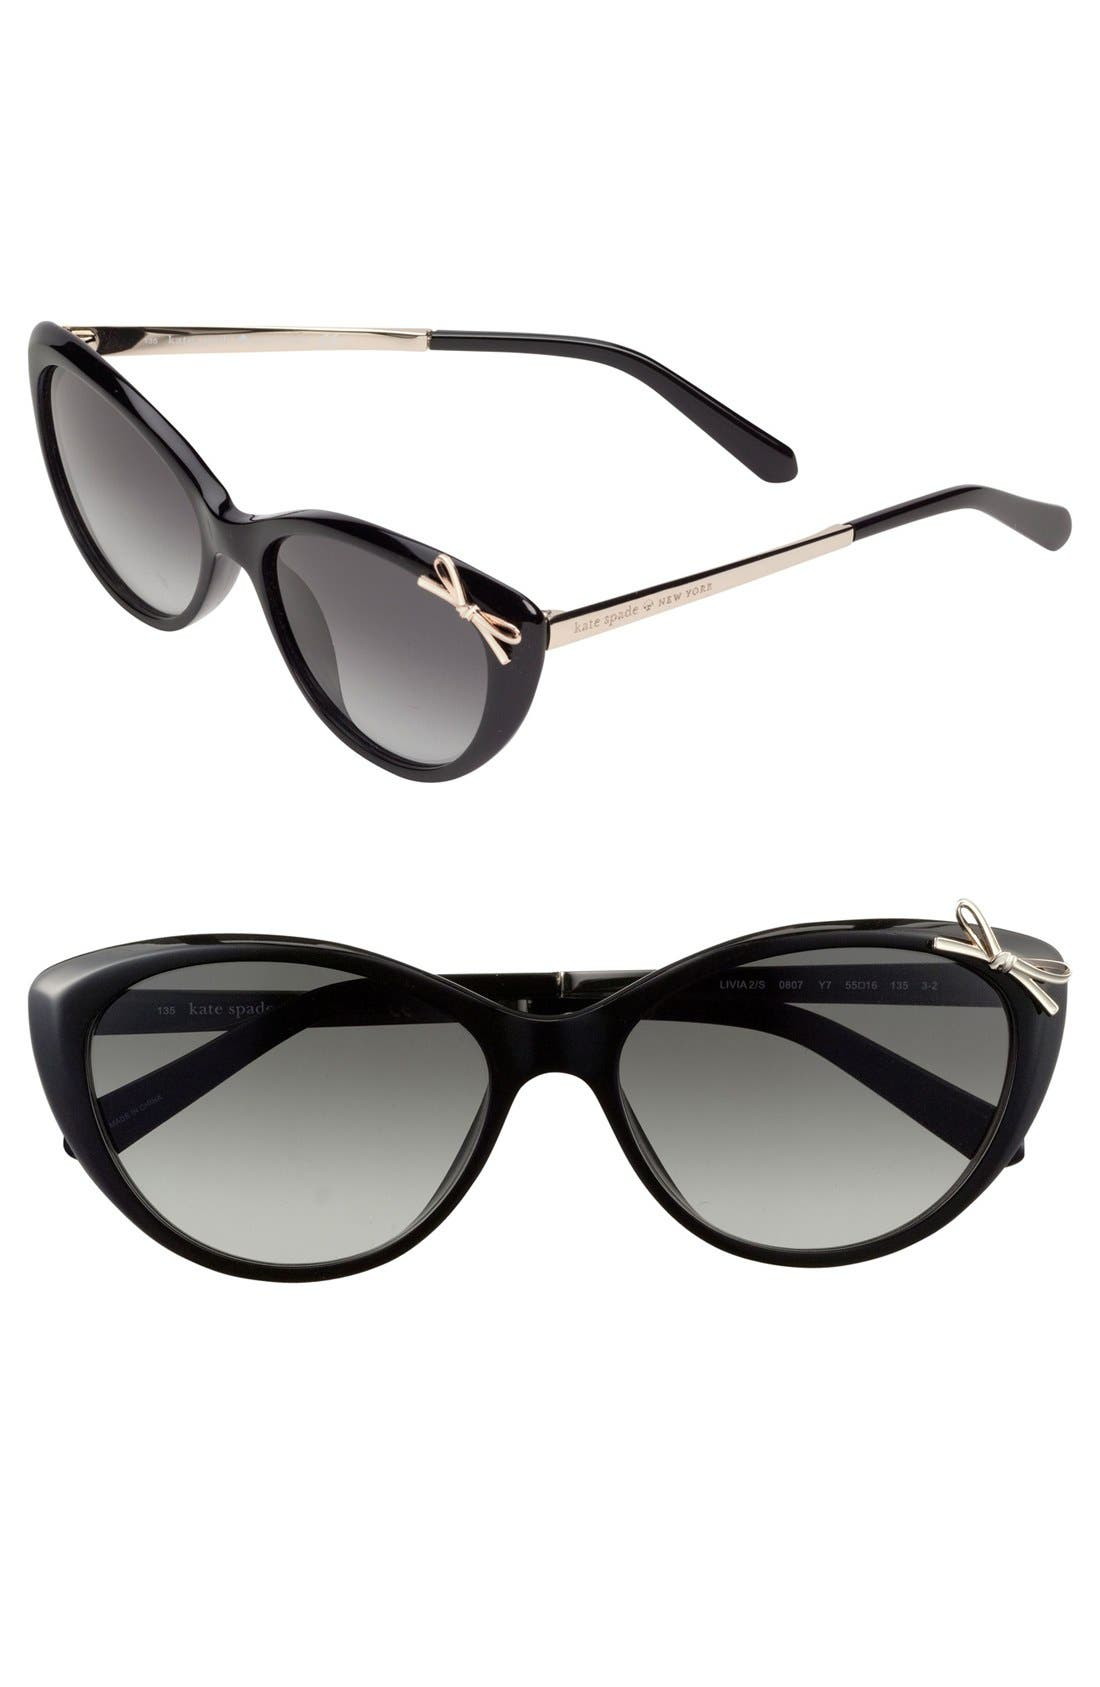 Main Image - kate spade new york 'livia 2' 55mm sunglasses